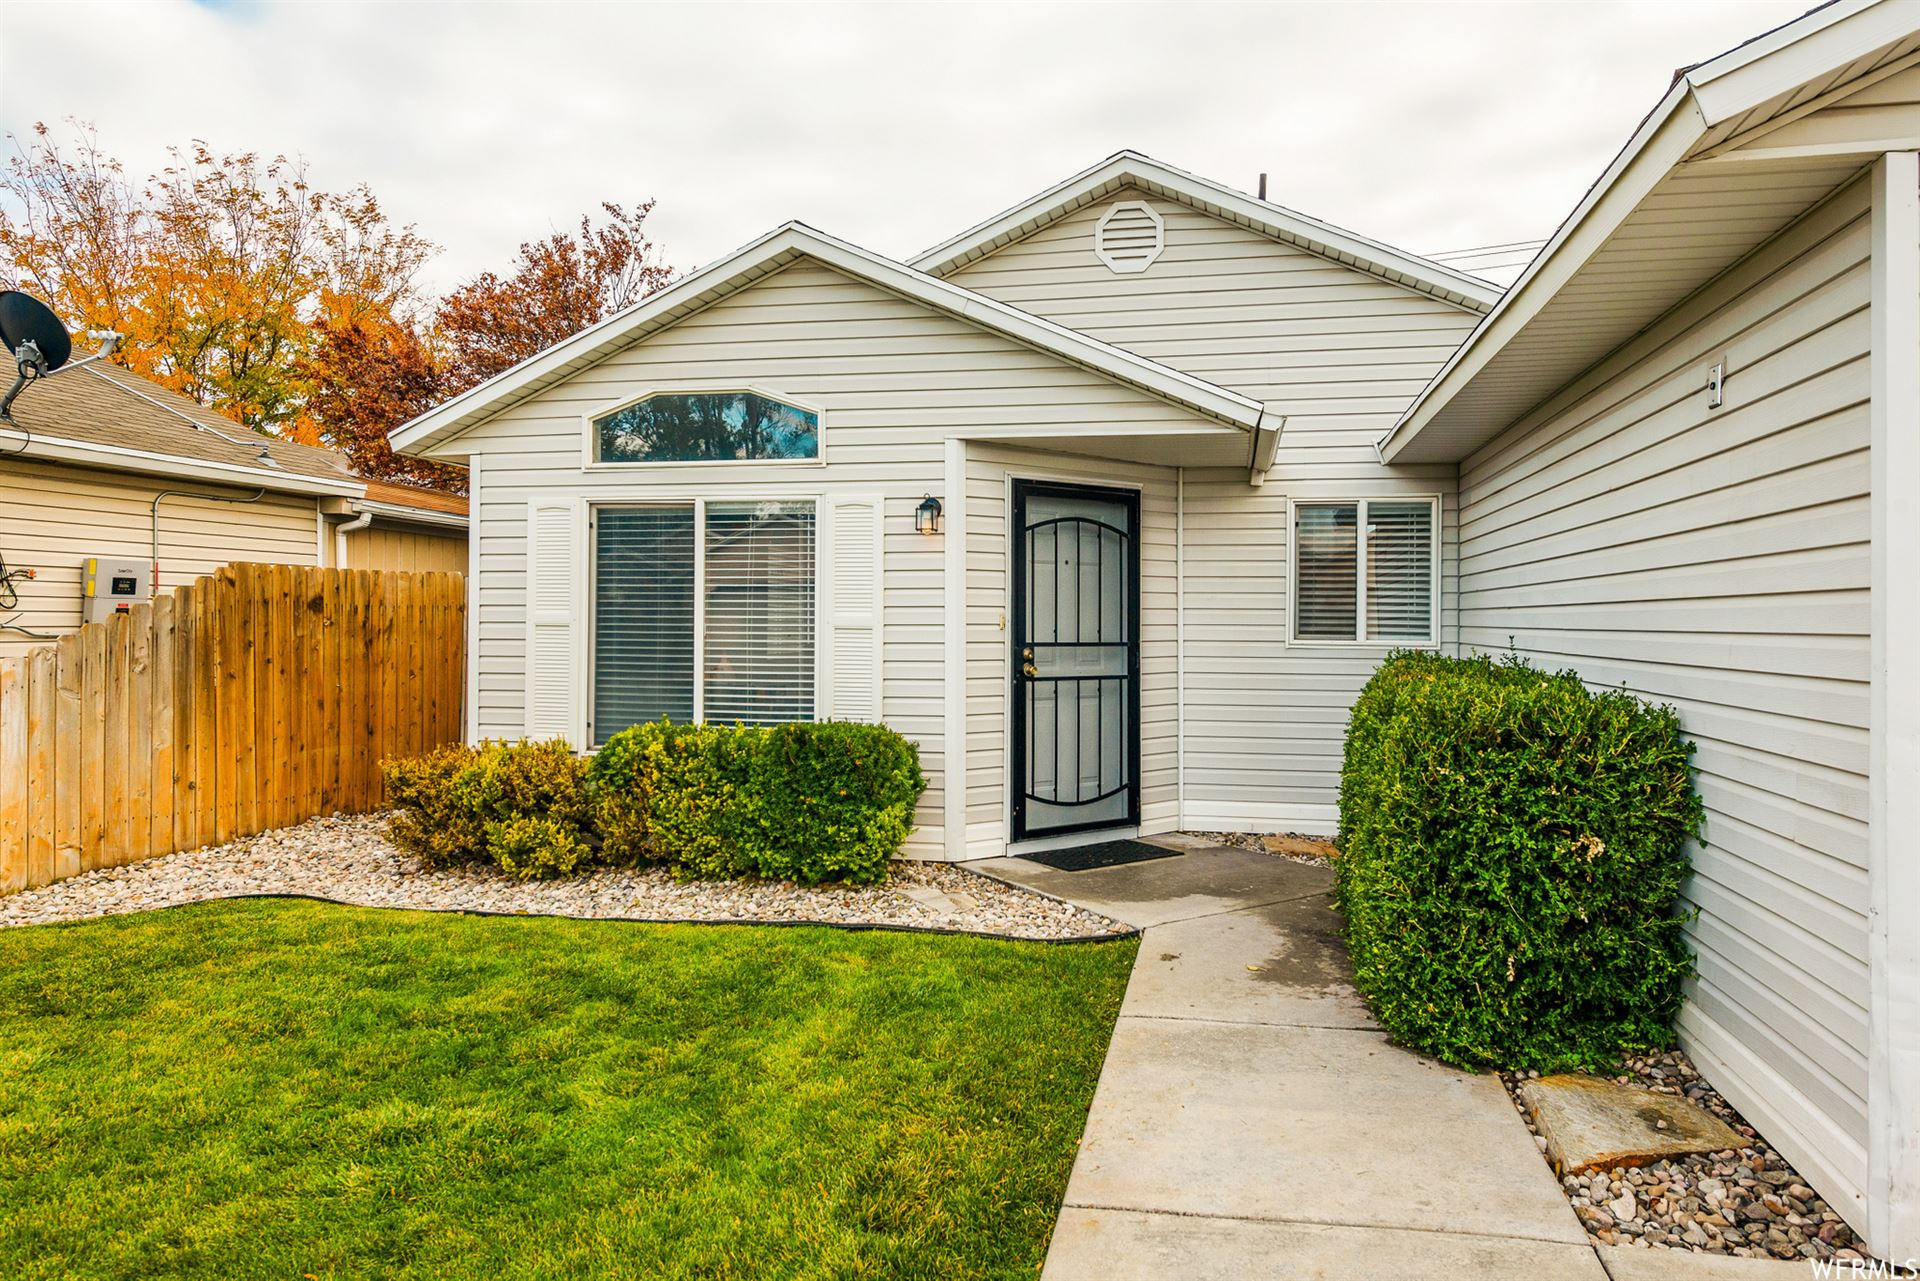 Photo of 5143 W FESTIVAL DR, West Valley City, UT 84120 (MLS # 1775855)